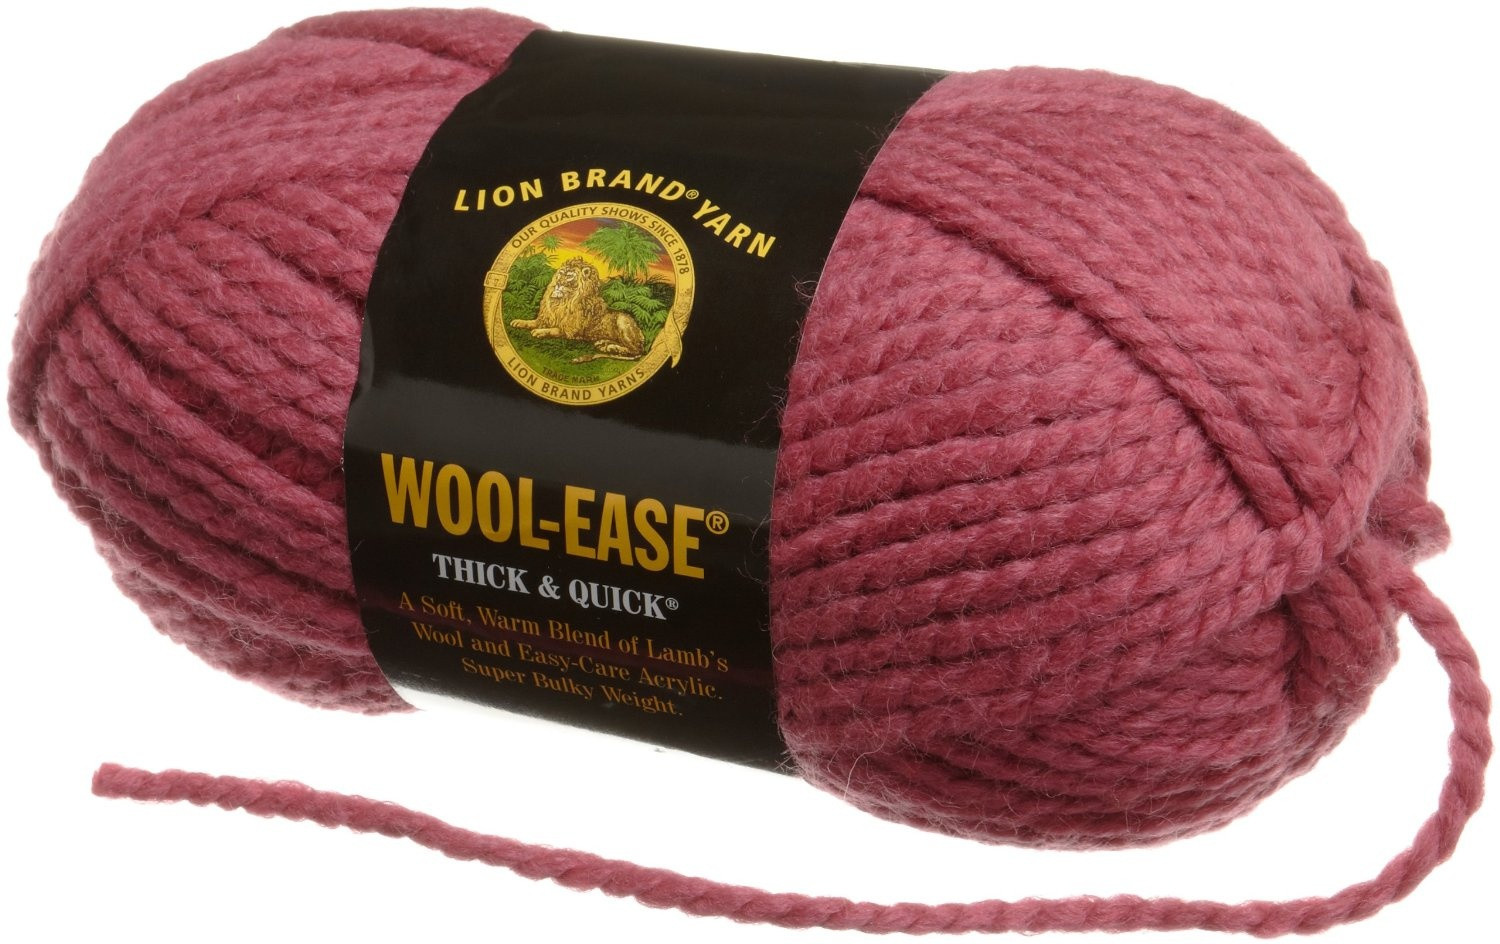 Lion Brand Yarn Thick and Quick Awesome Lion Brand Yarn 640 136f Wool Ease Thick and Quick Yarn Of Luxury 44 Models Lion Brand Yarn Thick and Quick